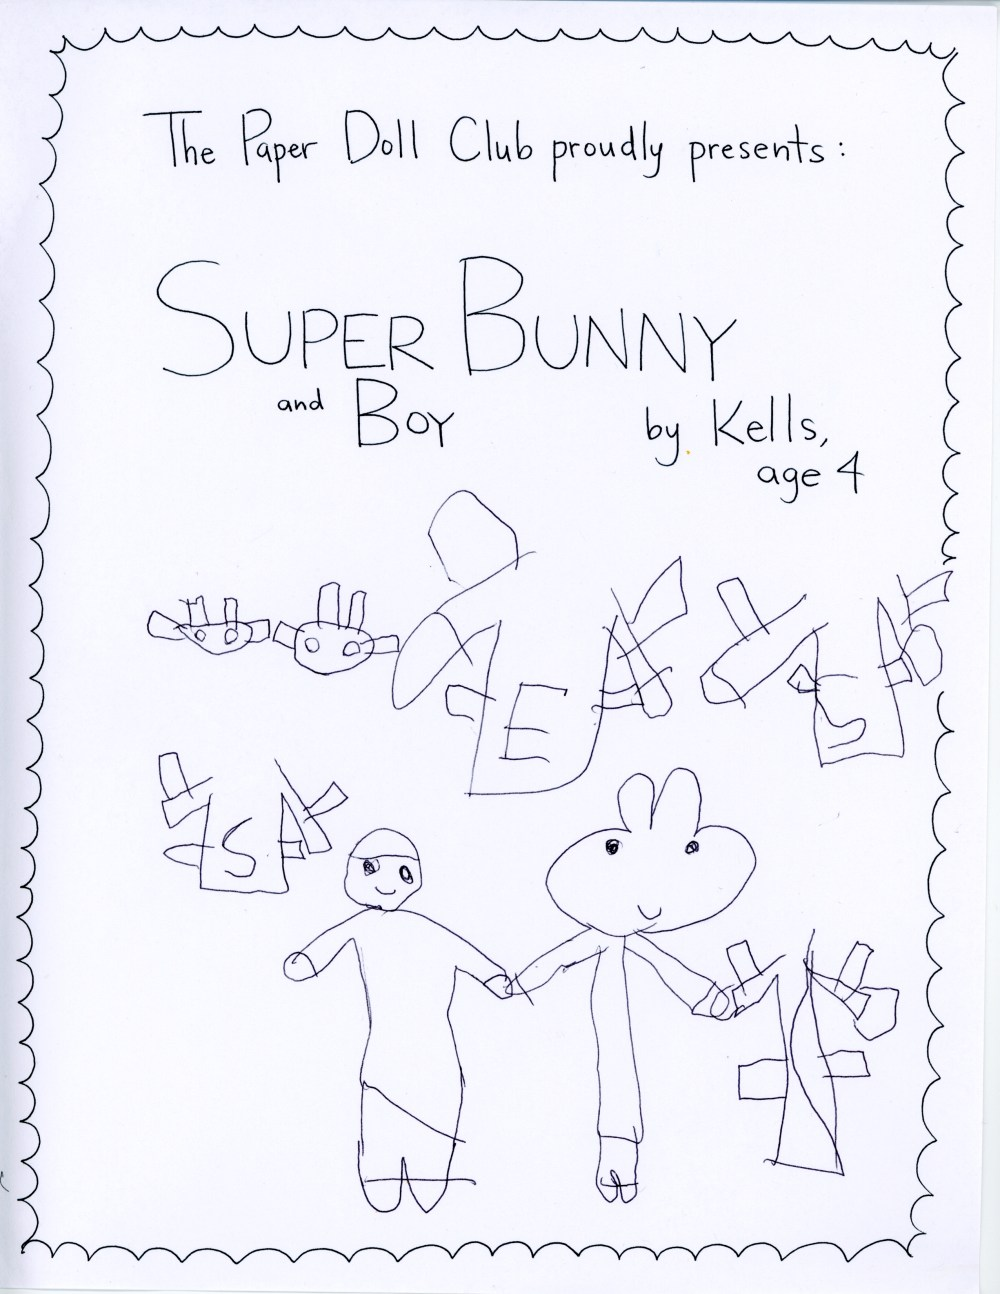 Super bunny by kells copy